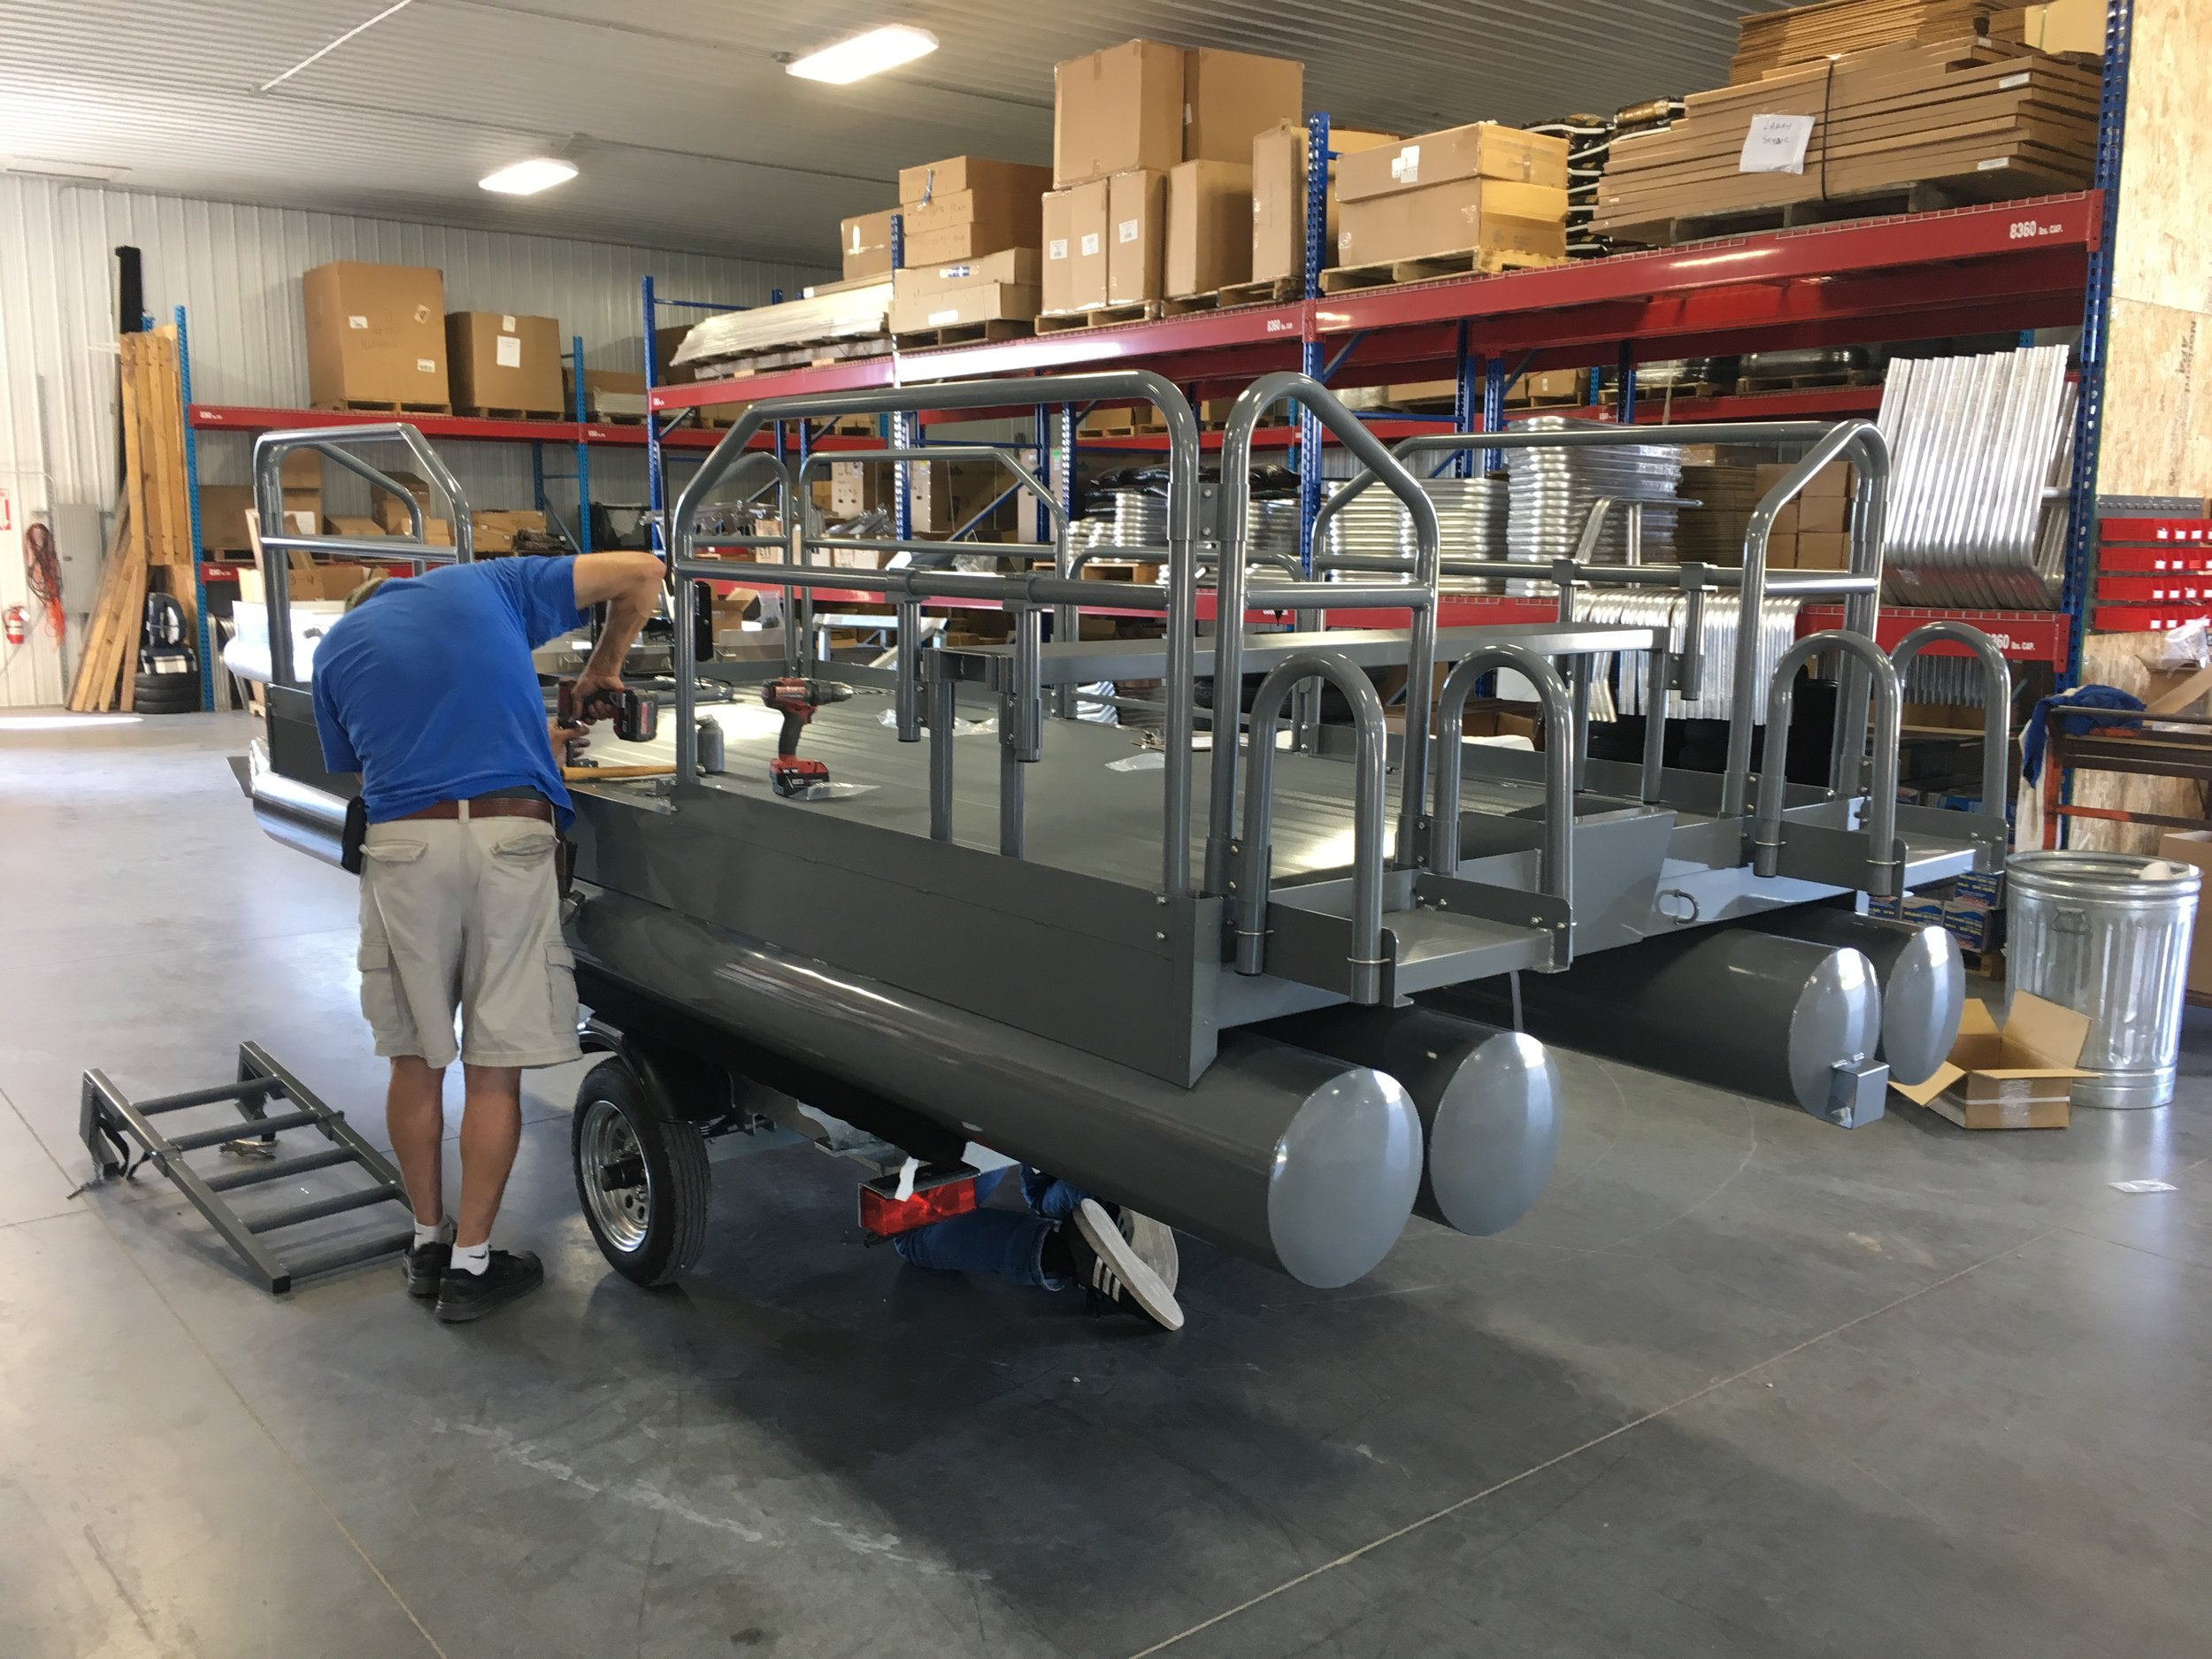 "615 Aluma Sport being assembled for a customer in Yelm Washington with premium powder coat paint, wearing Battle Gray, this craft is almost to nice to use.  Note: 34"" handrails all around with accessory rear battery shelves and side gates along with ladder that is being mounted."